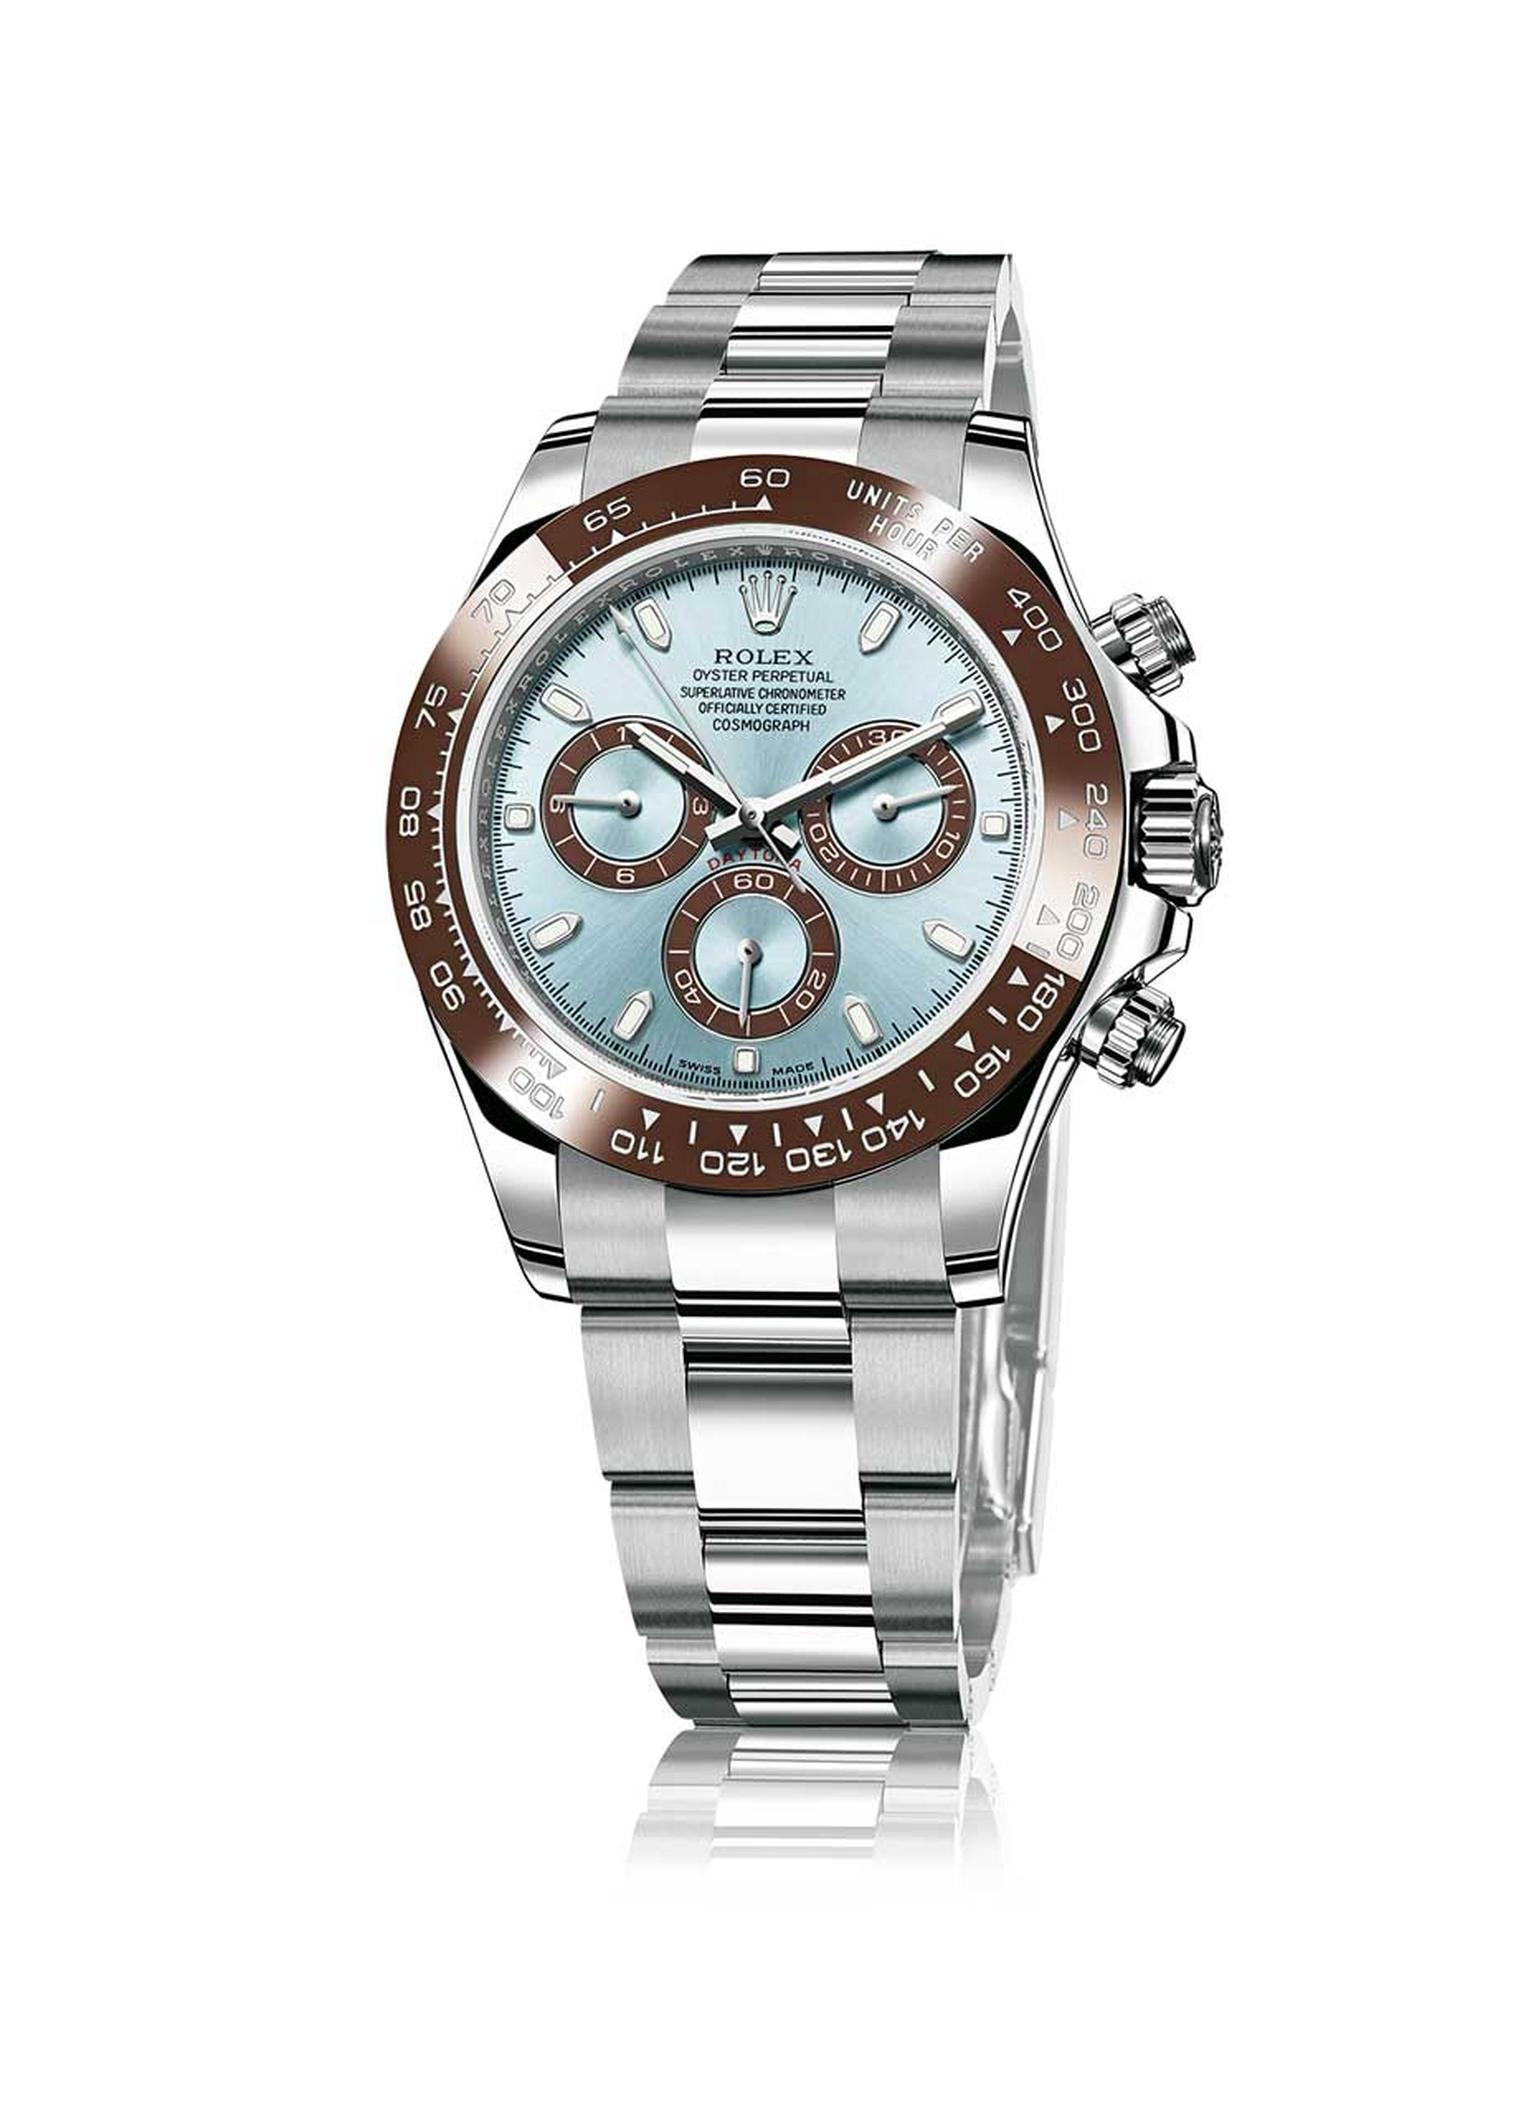 Rolex Cosmograph Daytona is continuously revisited in different materials and colours. This 50th anniversary model in platinum was presented in 2013.